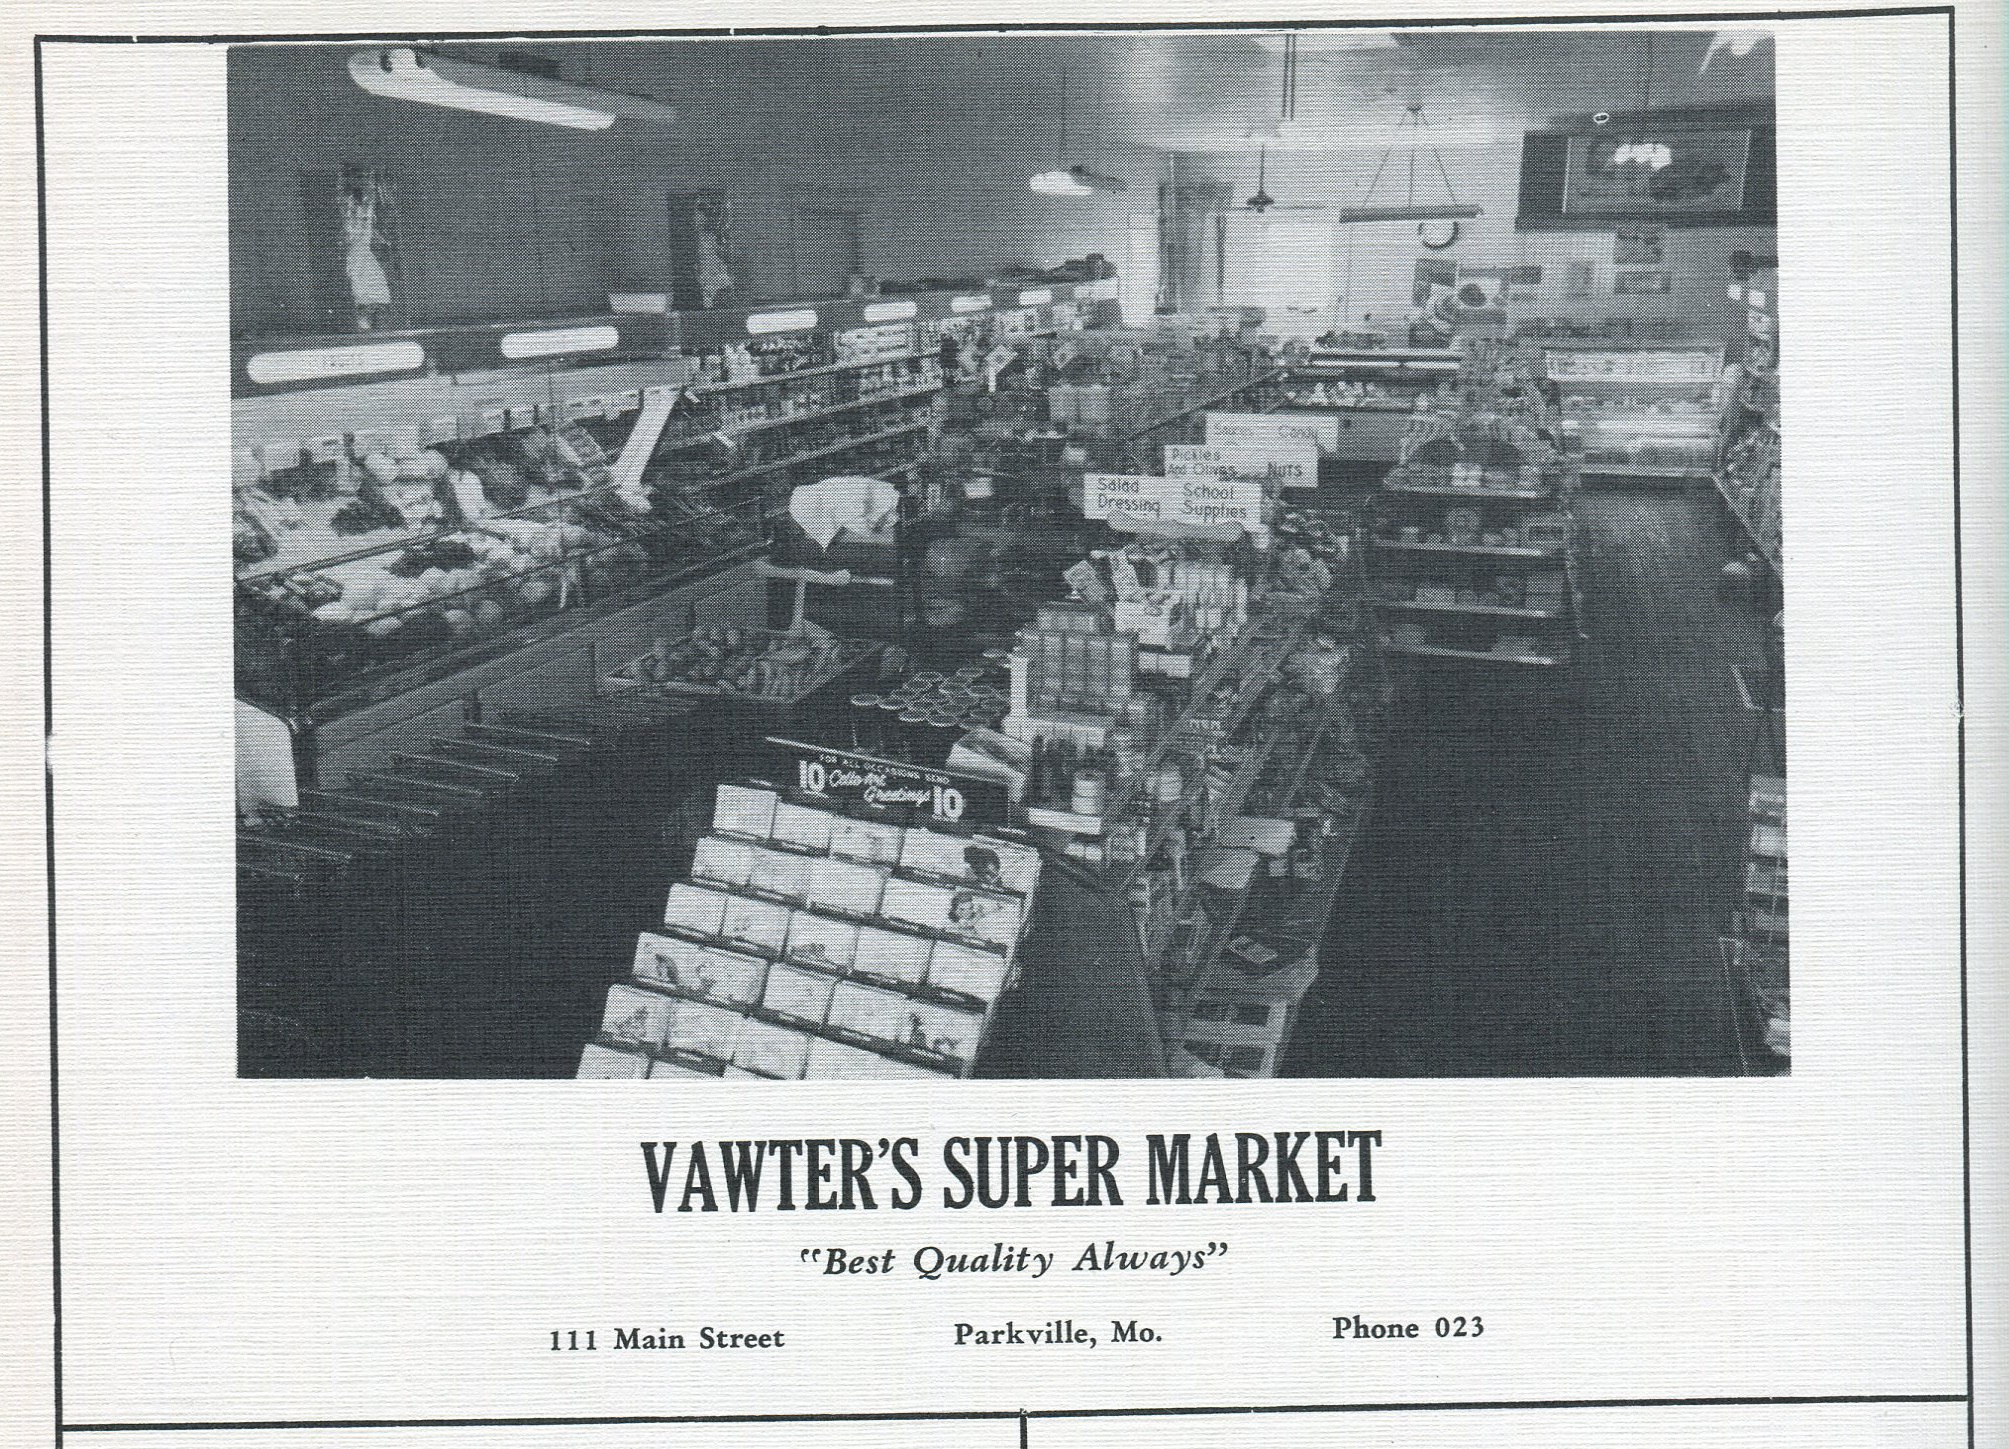 A look inside Vawter's Super Market, featuring aisles of groceries. An advertisement in the 1953 edition of the Narva, the Park College year book.